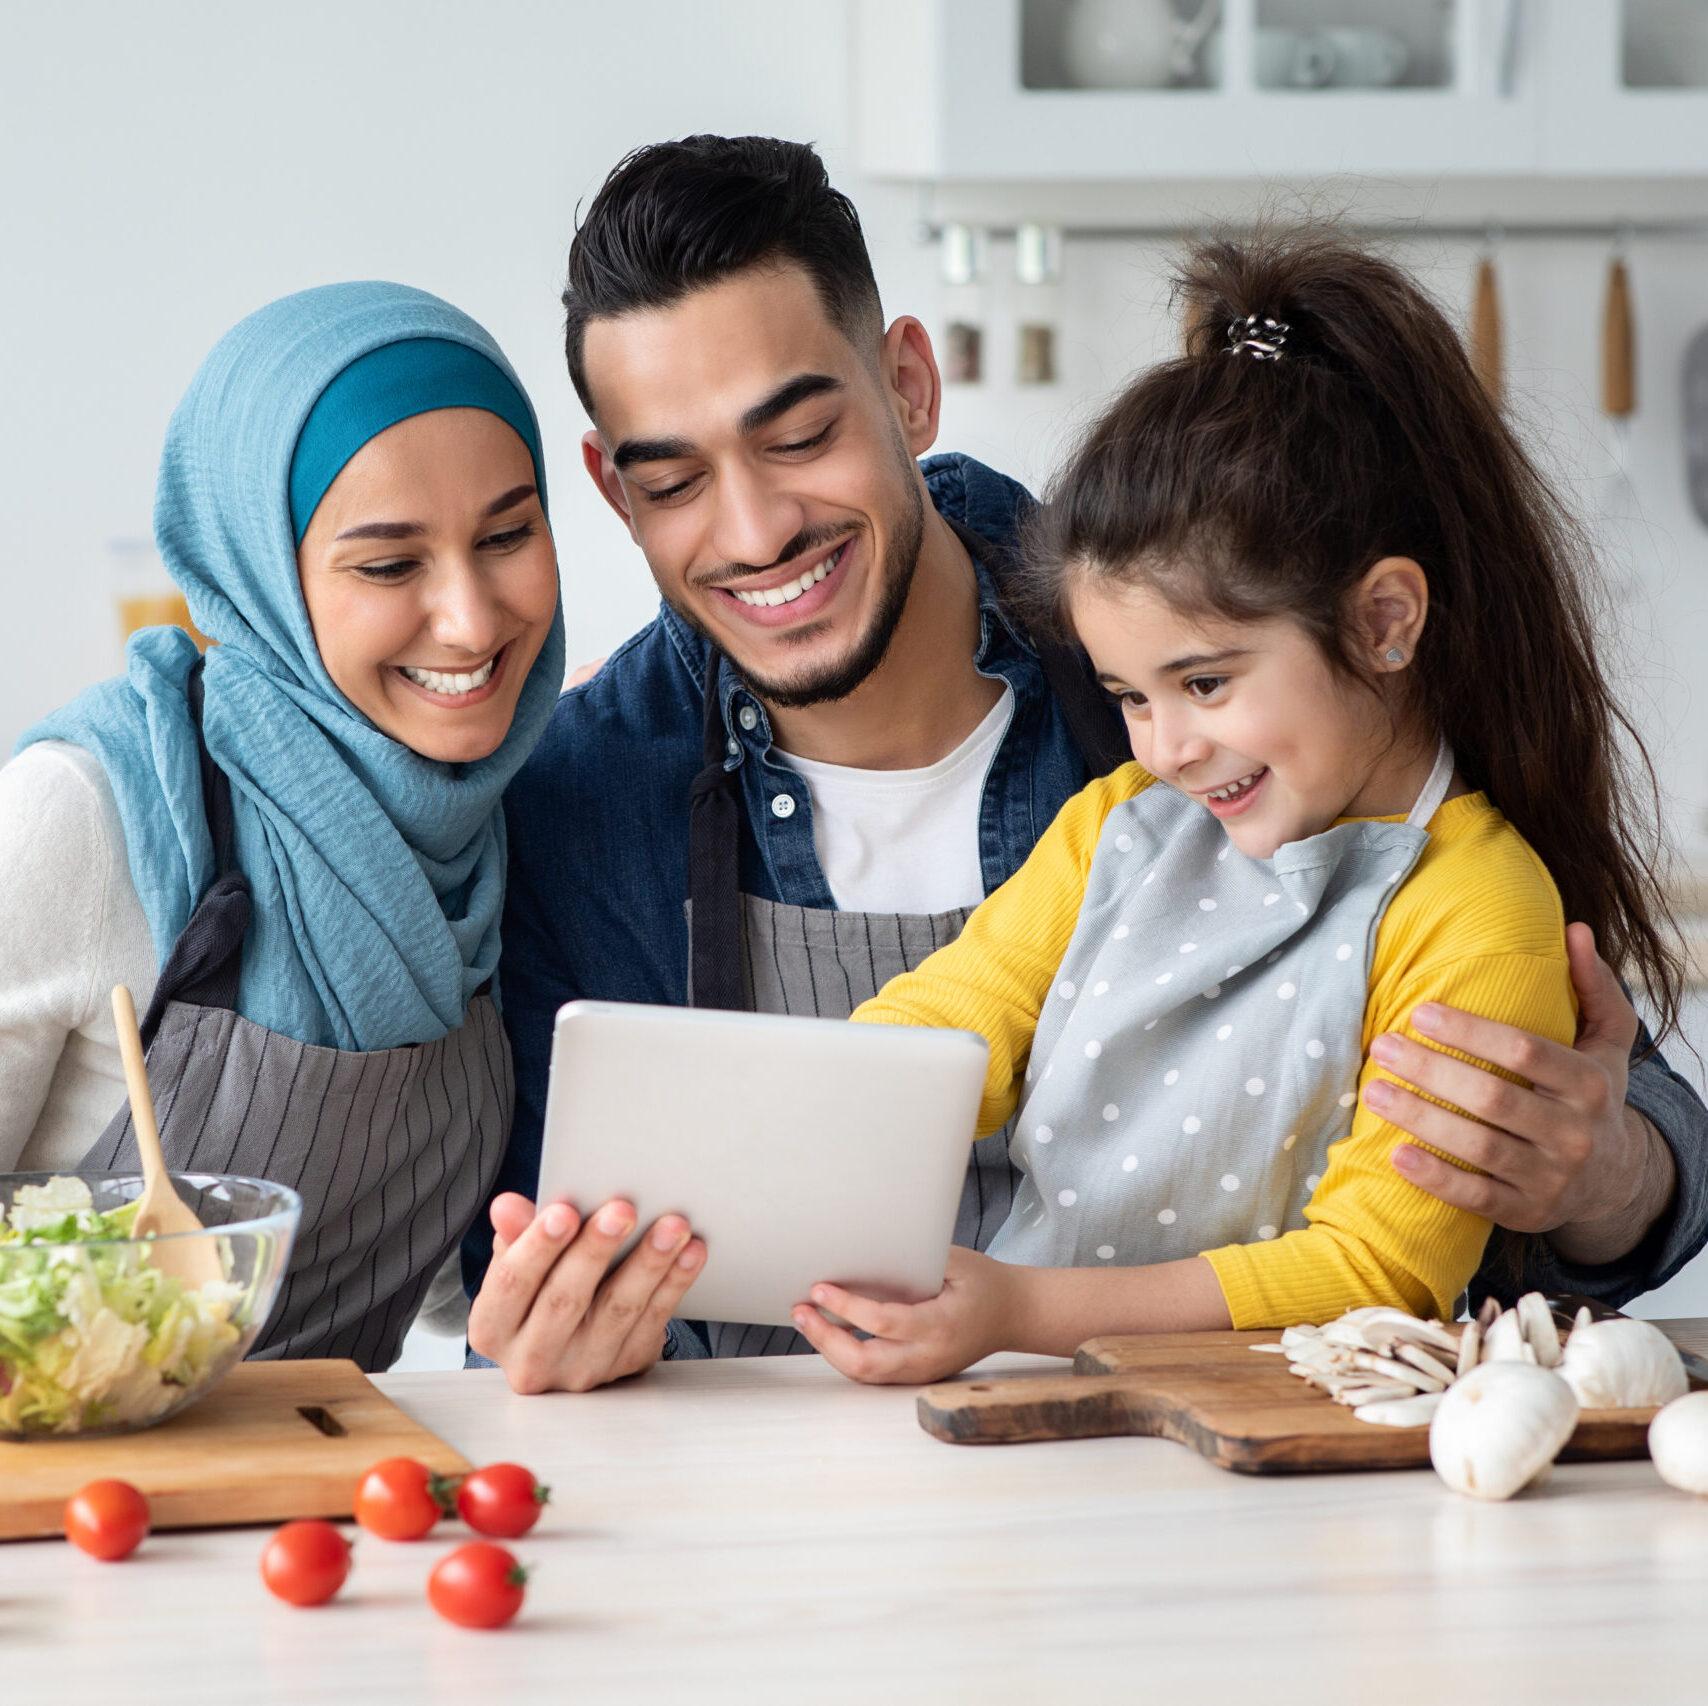 Happy Muslim Family Using Digital Tablet While Cooking In Kitchen Together, Cute Little Arab Girl And Her Islamic Parents Checking Online Recipe On Tab Computer While Preparing Food At Home